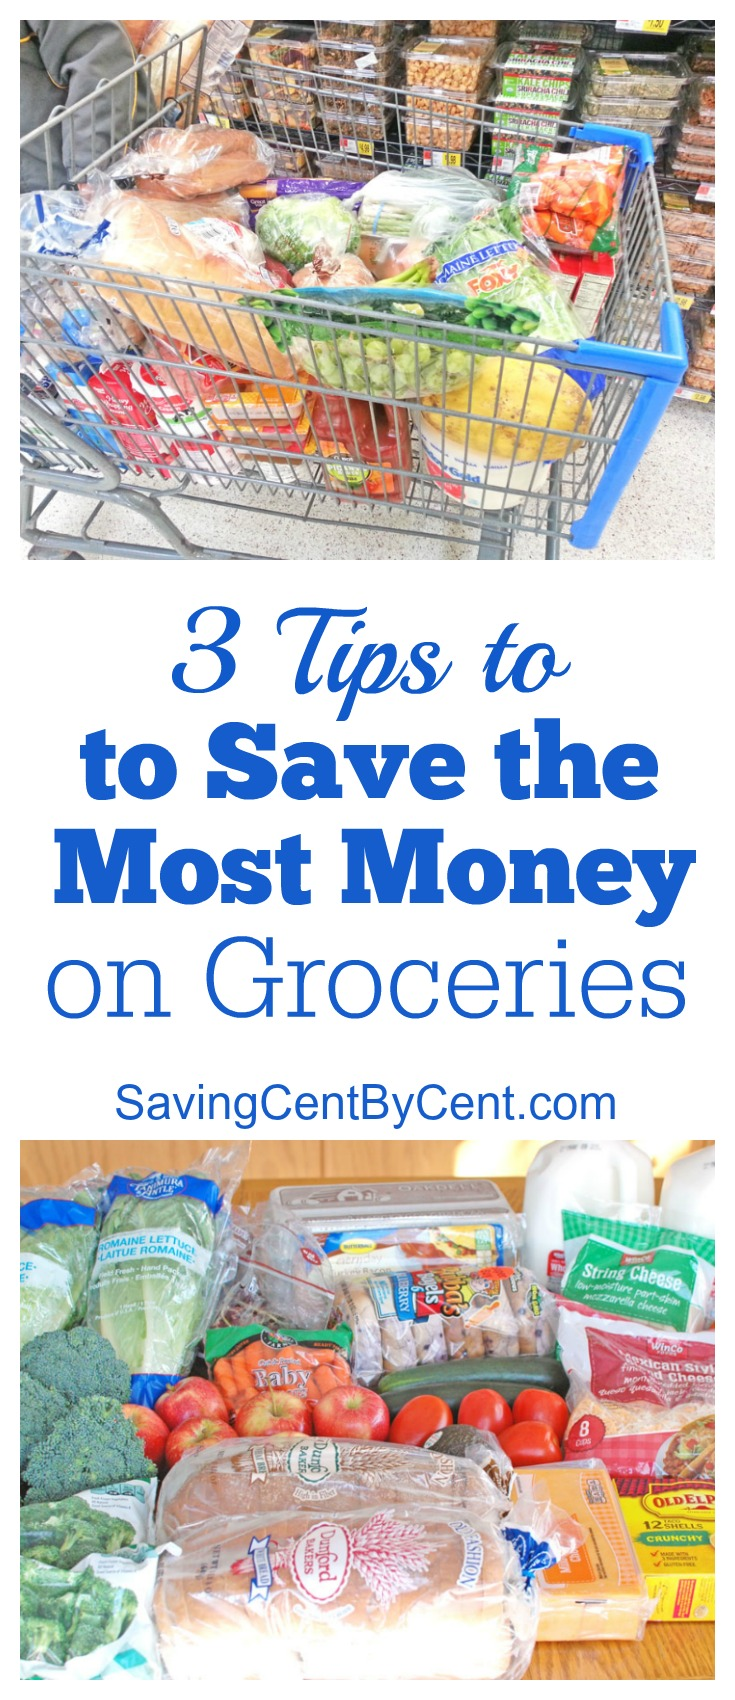 3 tips to save the most money on groceries